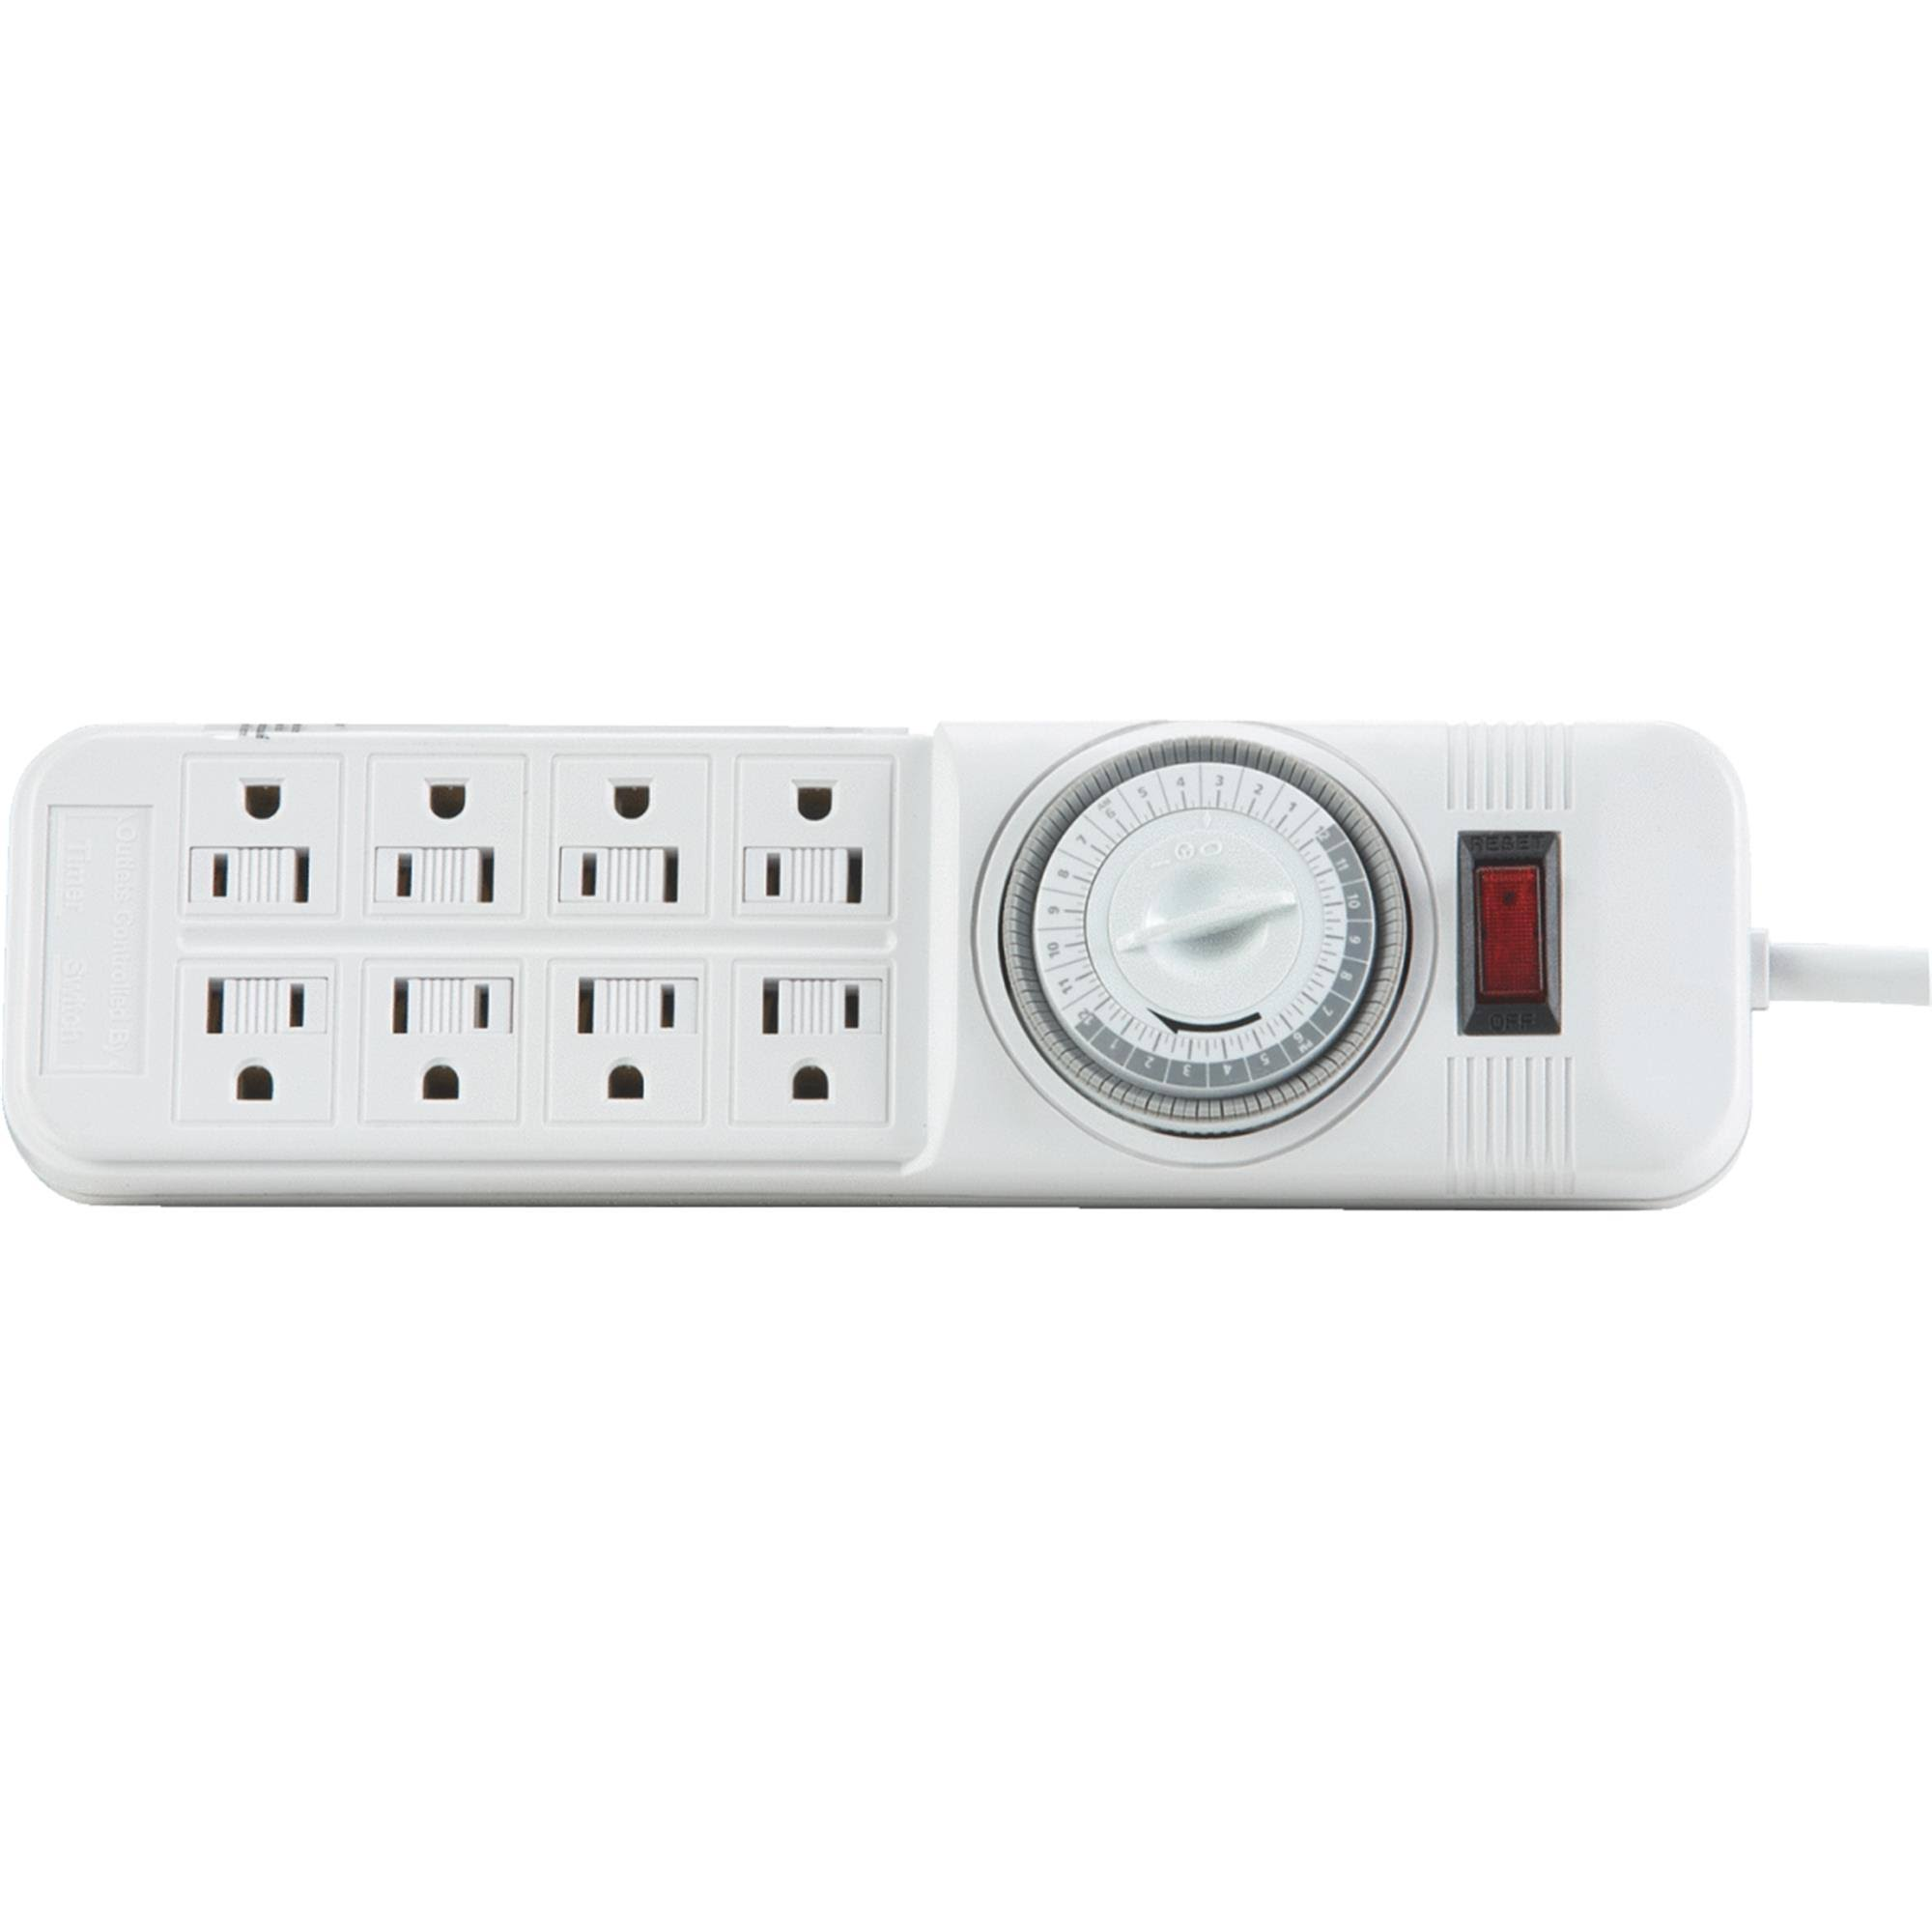 Woods Import Power Strip 4 Outlet - with Timer